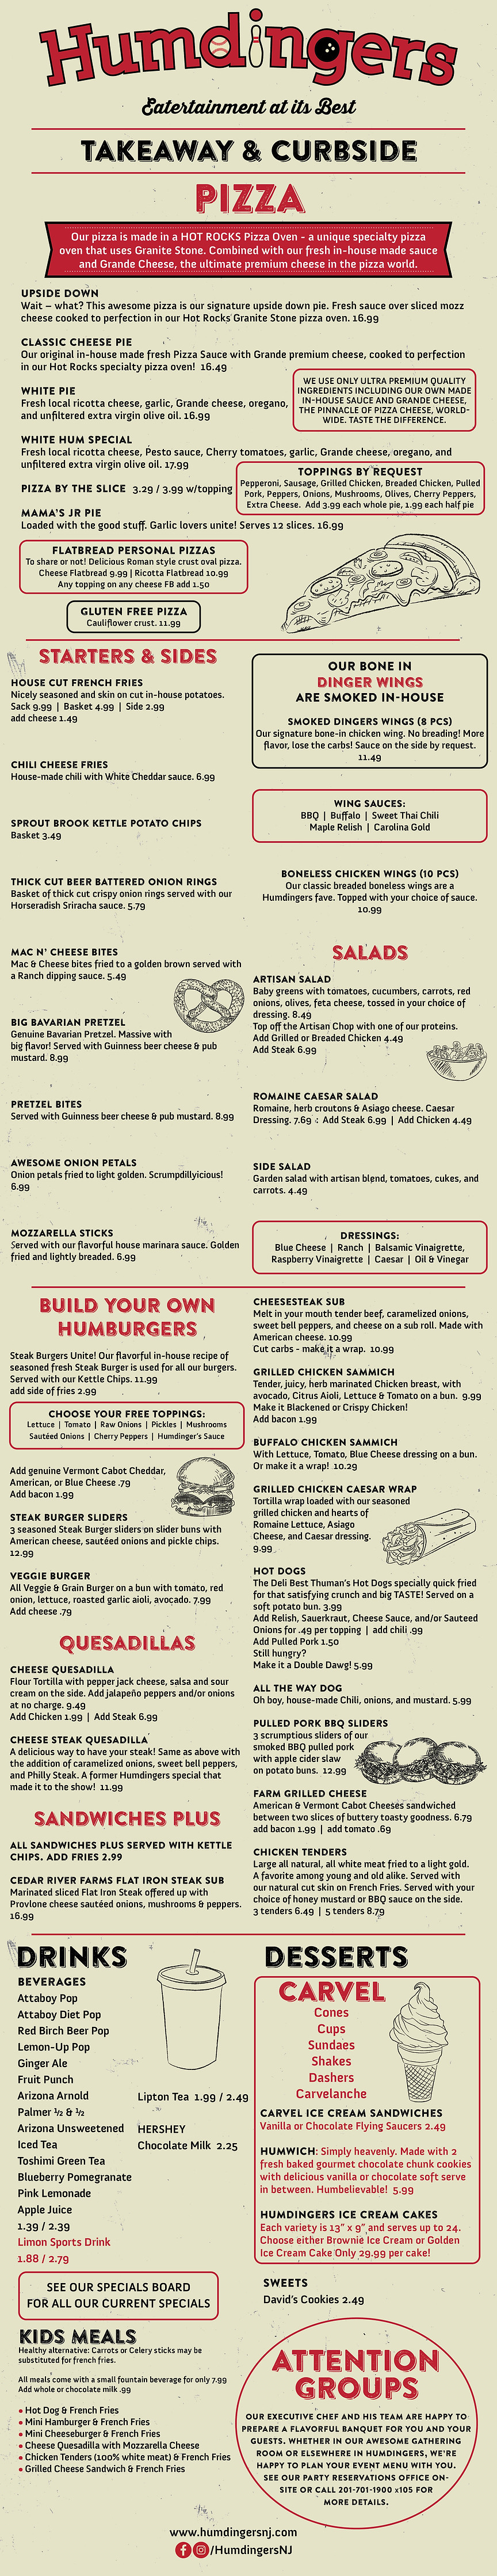 Vertical Takeaway Menu 092320.jpg